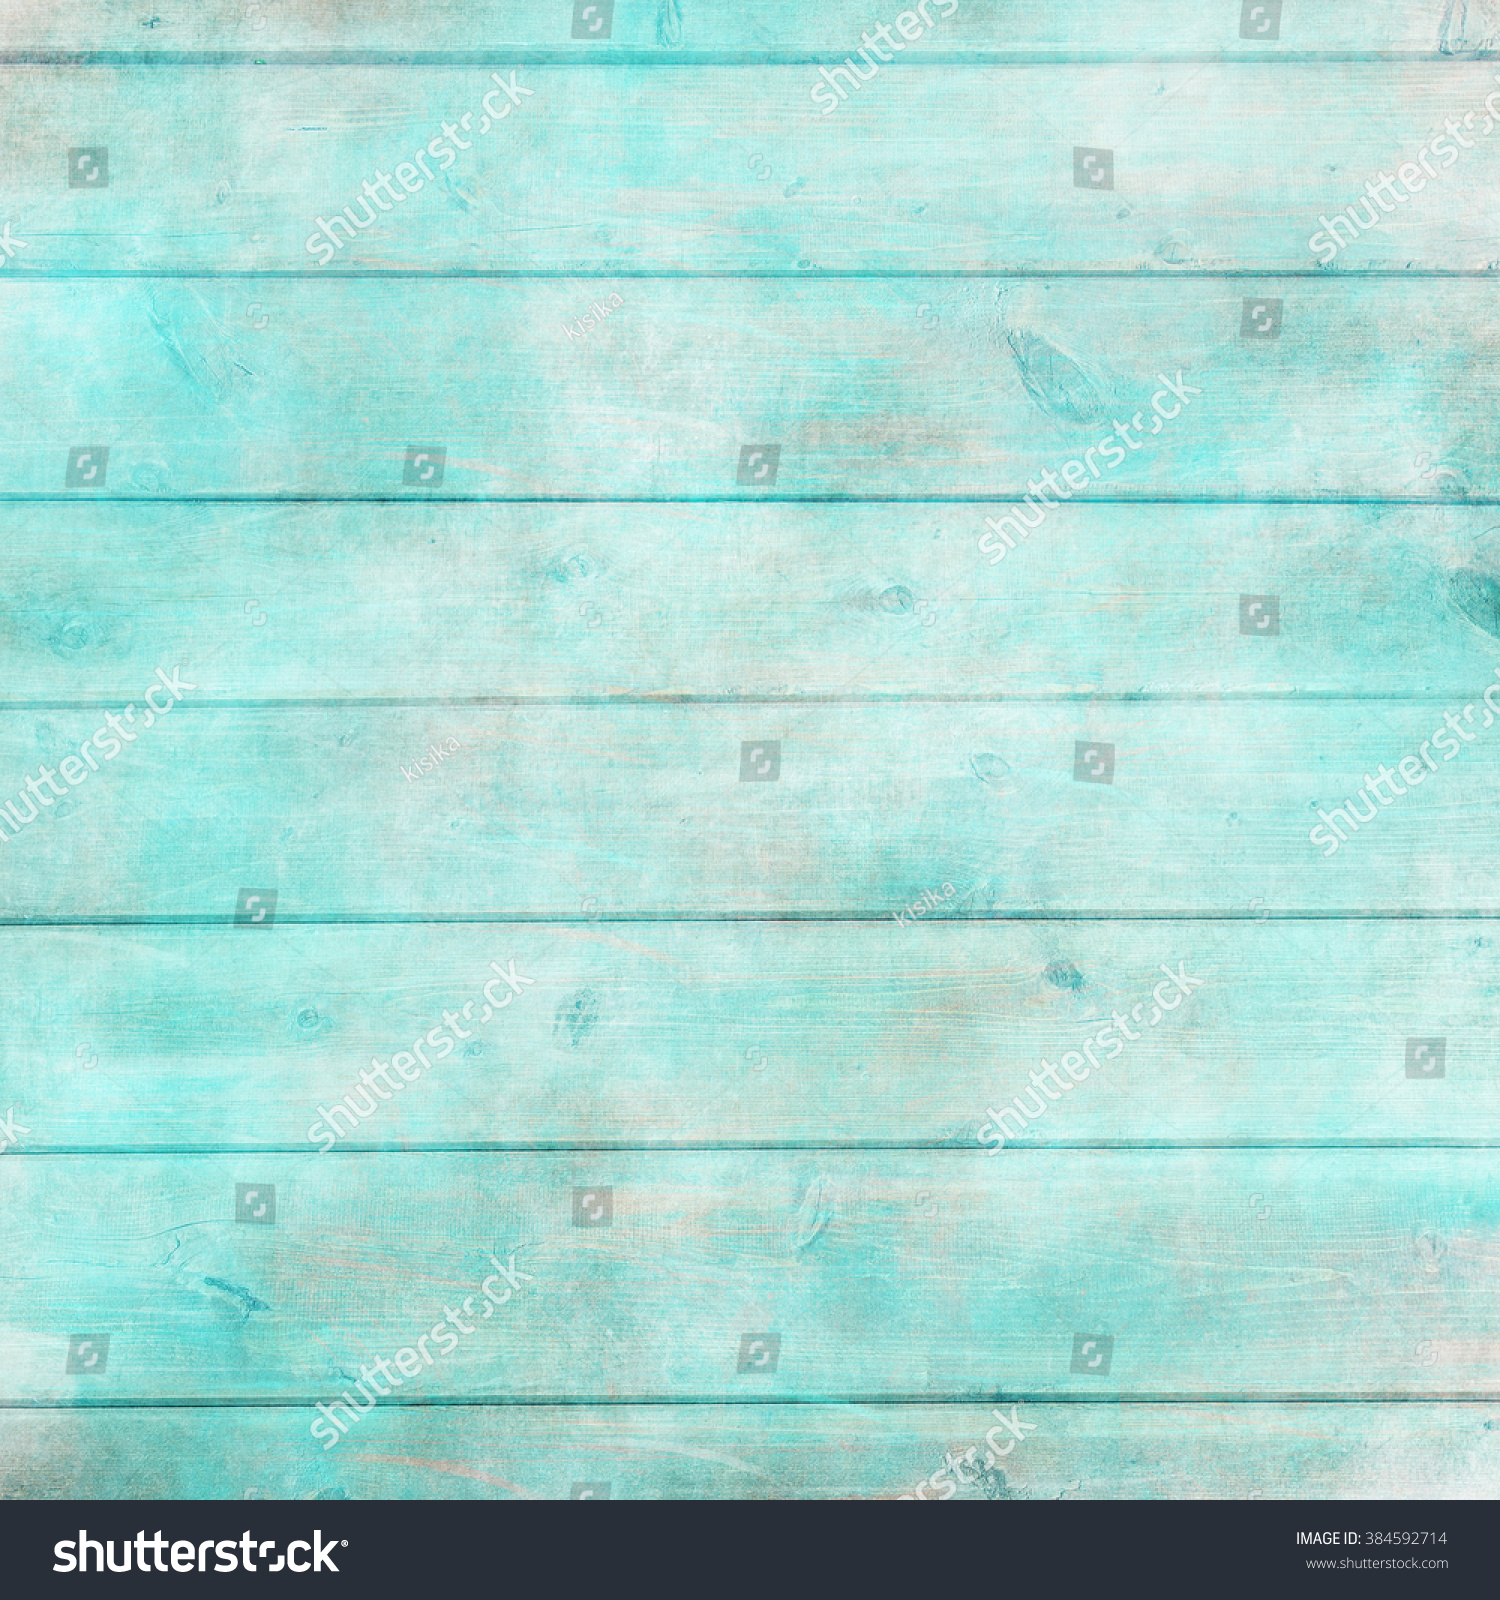 Royalty Free Shabby Chic Wood